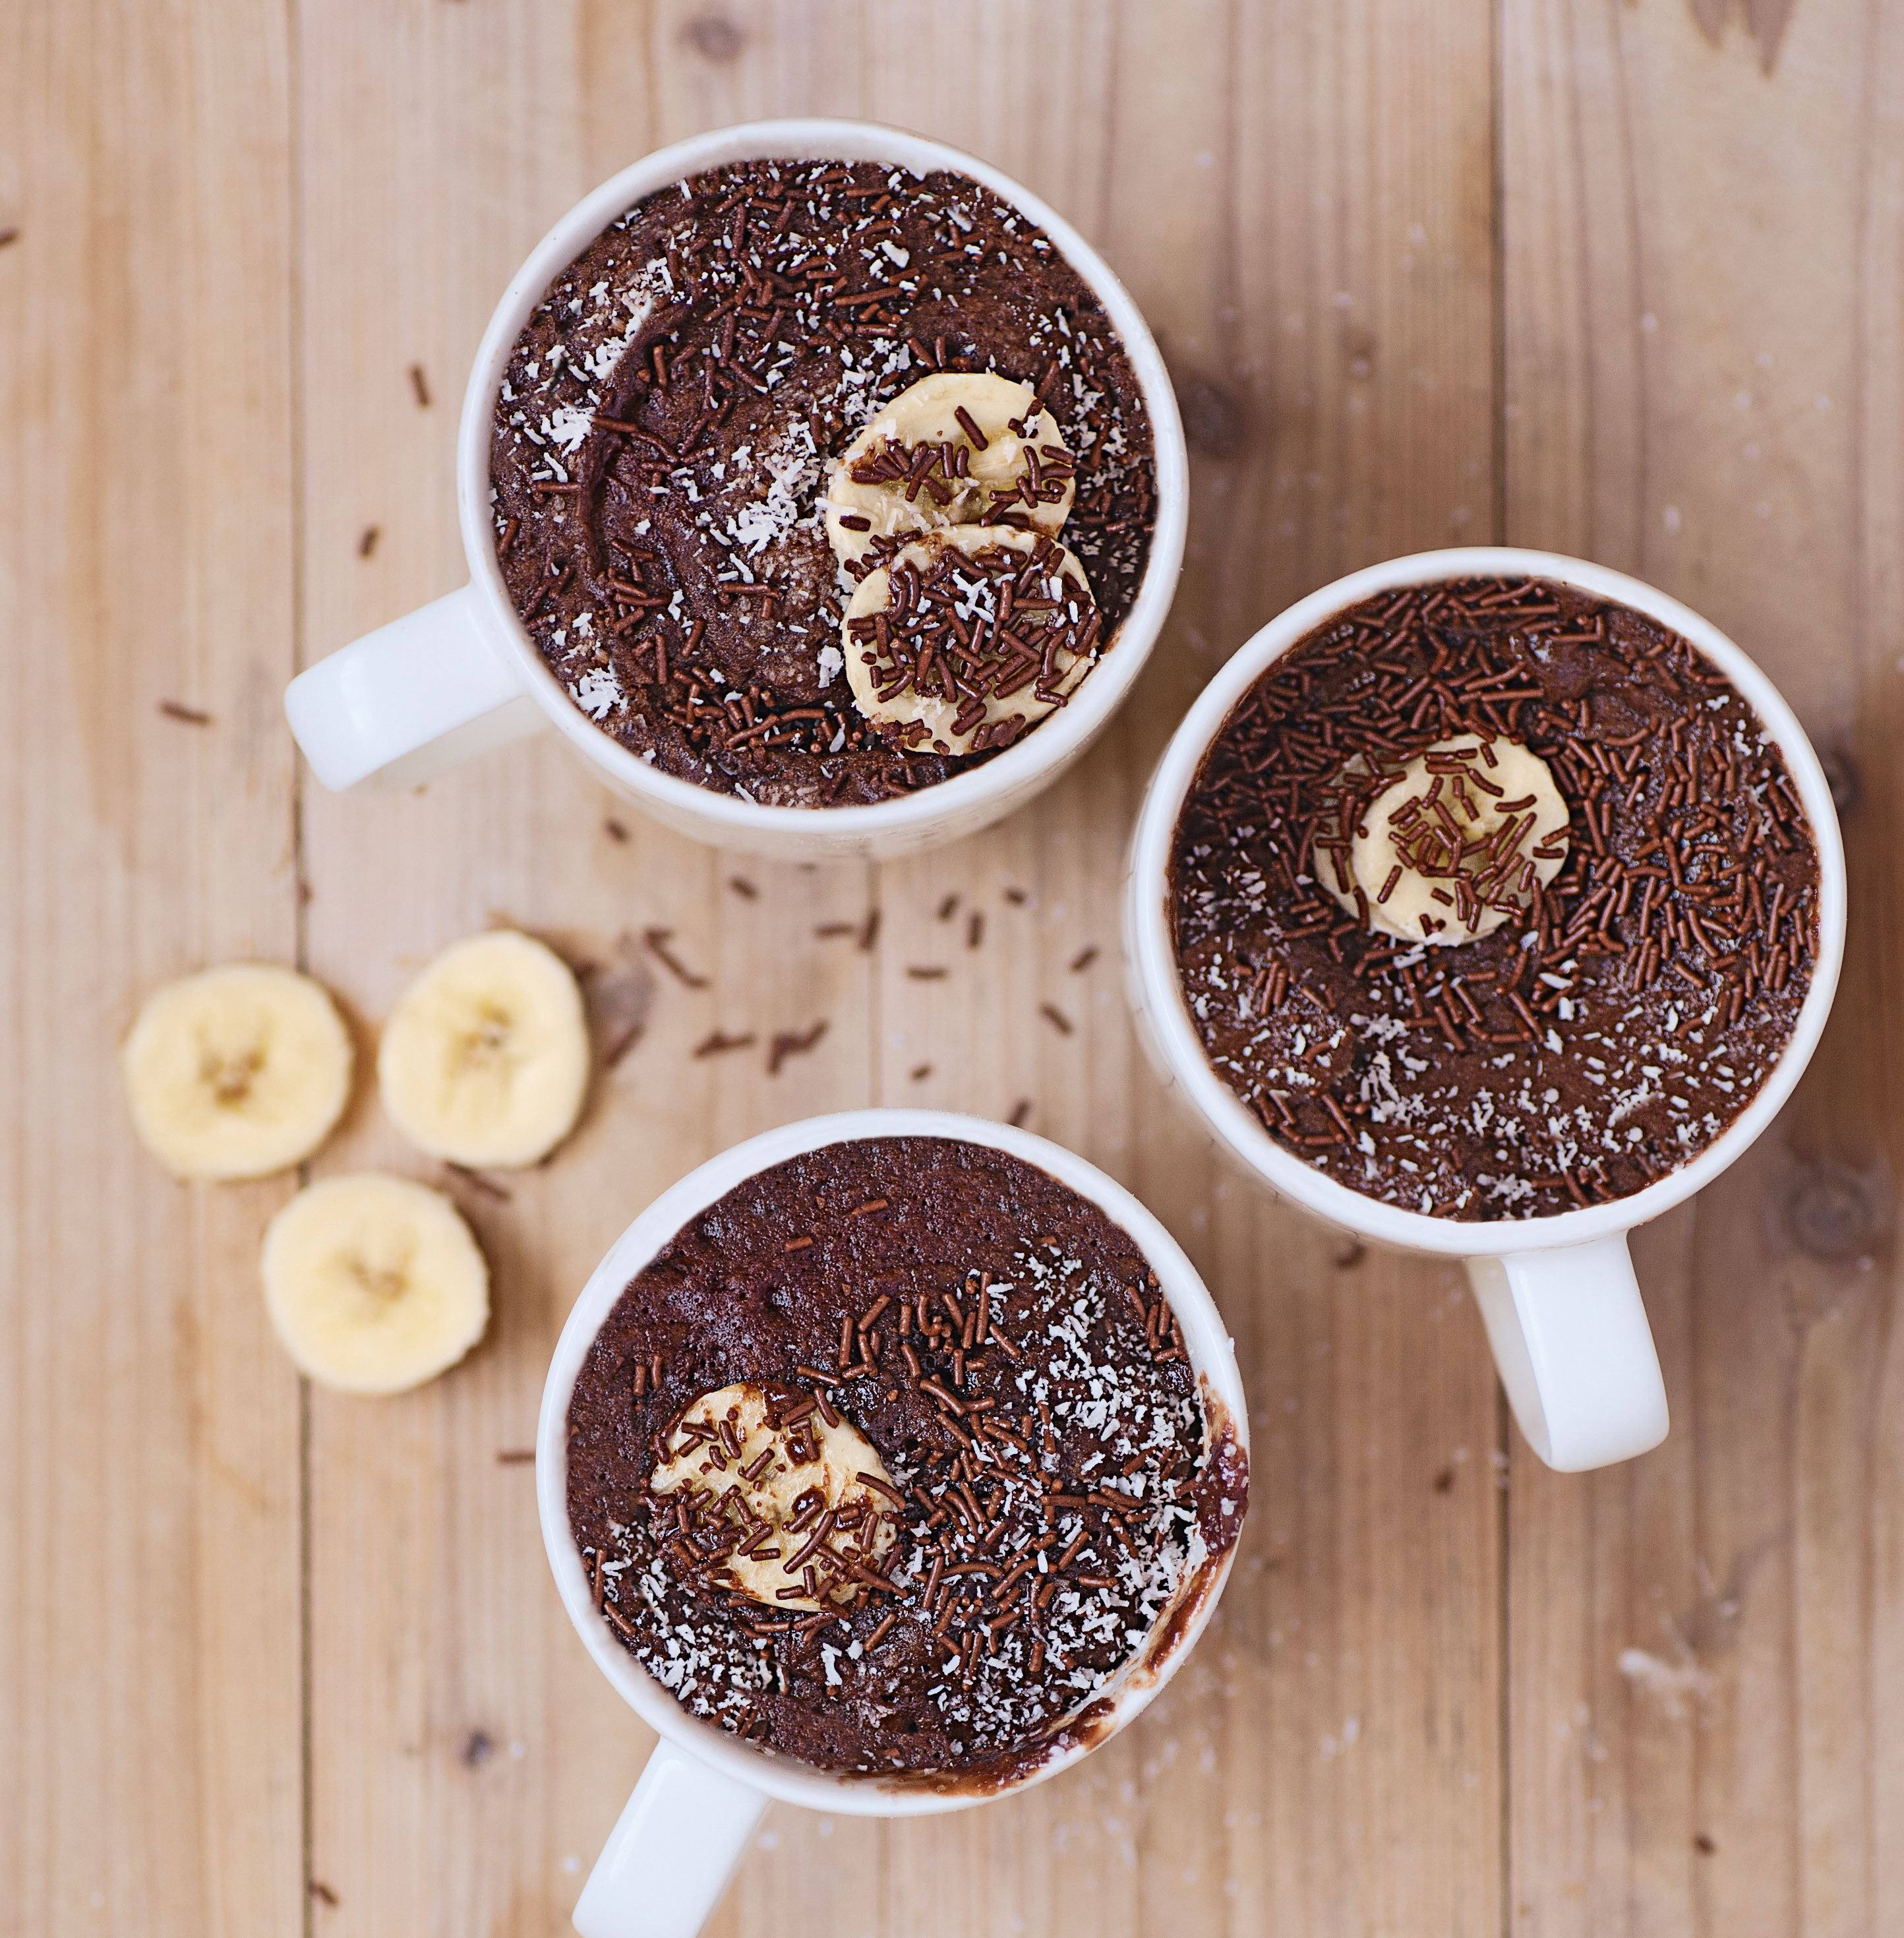 Banana & chocolate mug cake with coconut